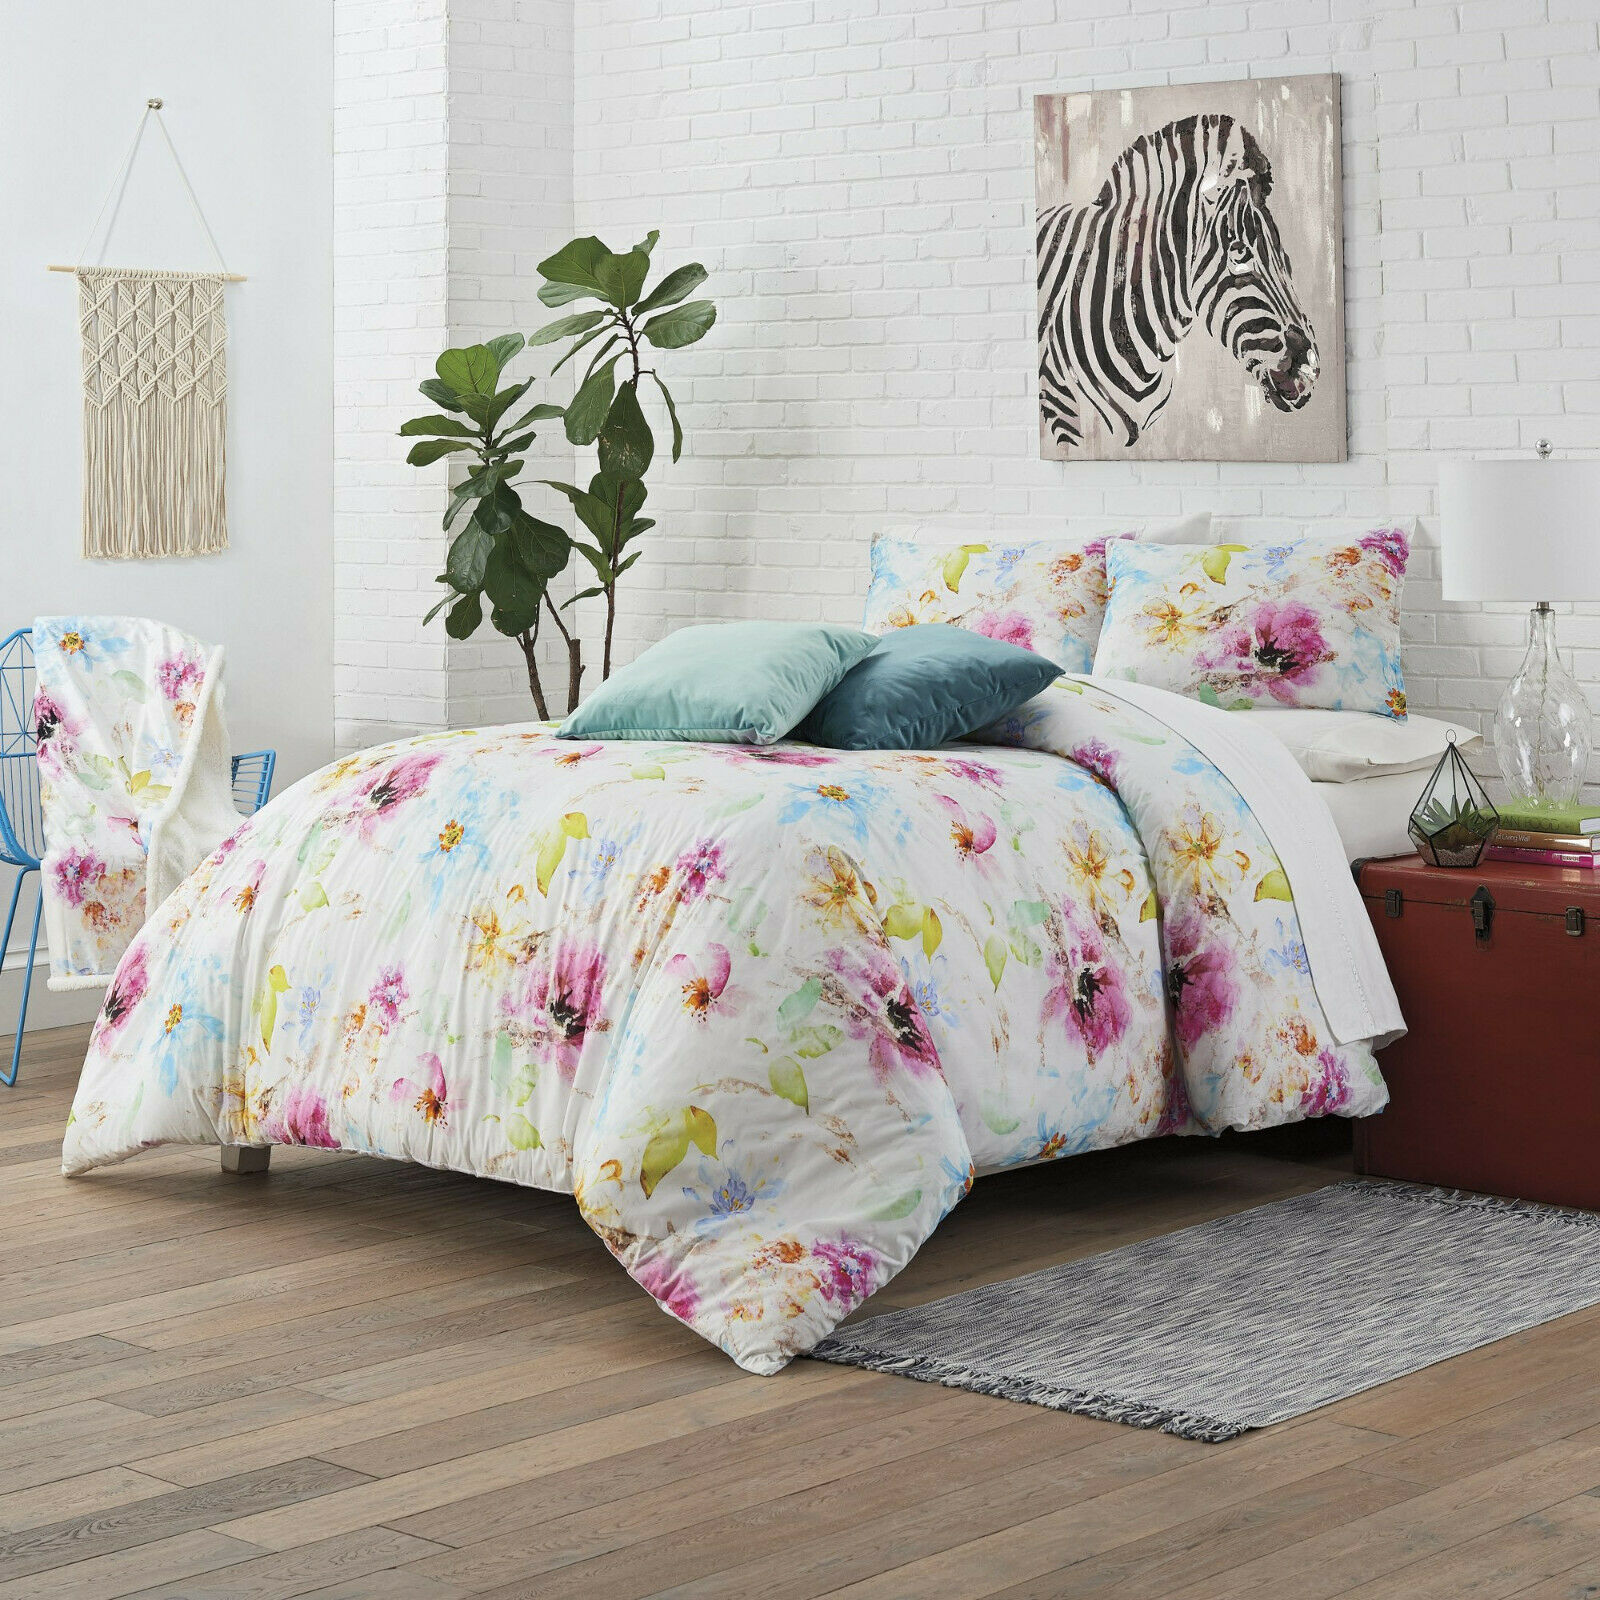 Endless Mae® Kylie Comforter Set Bedding